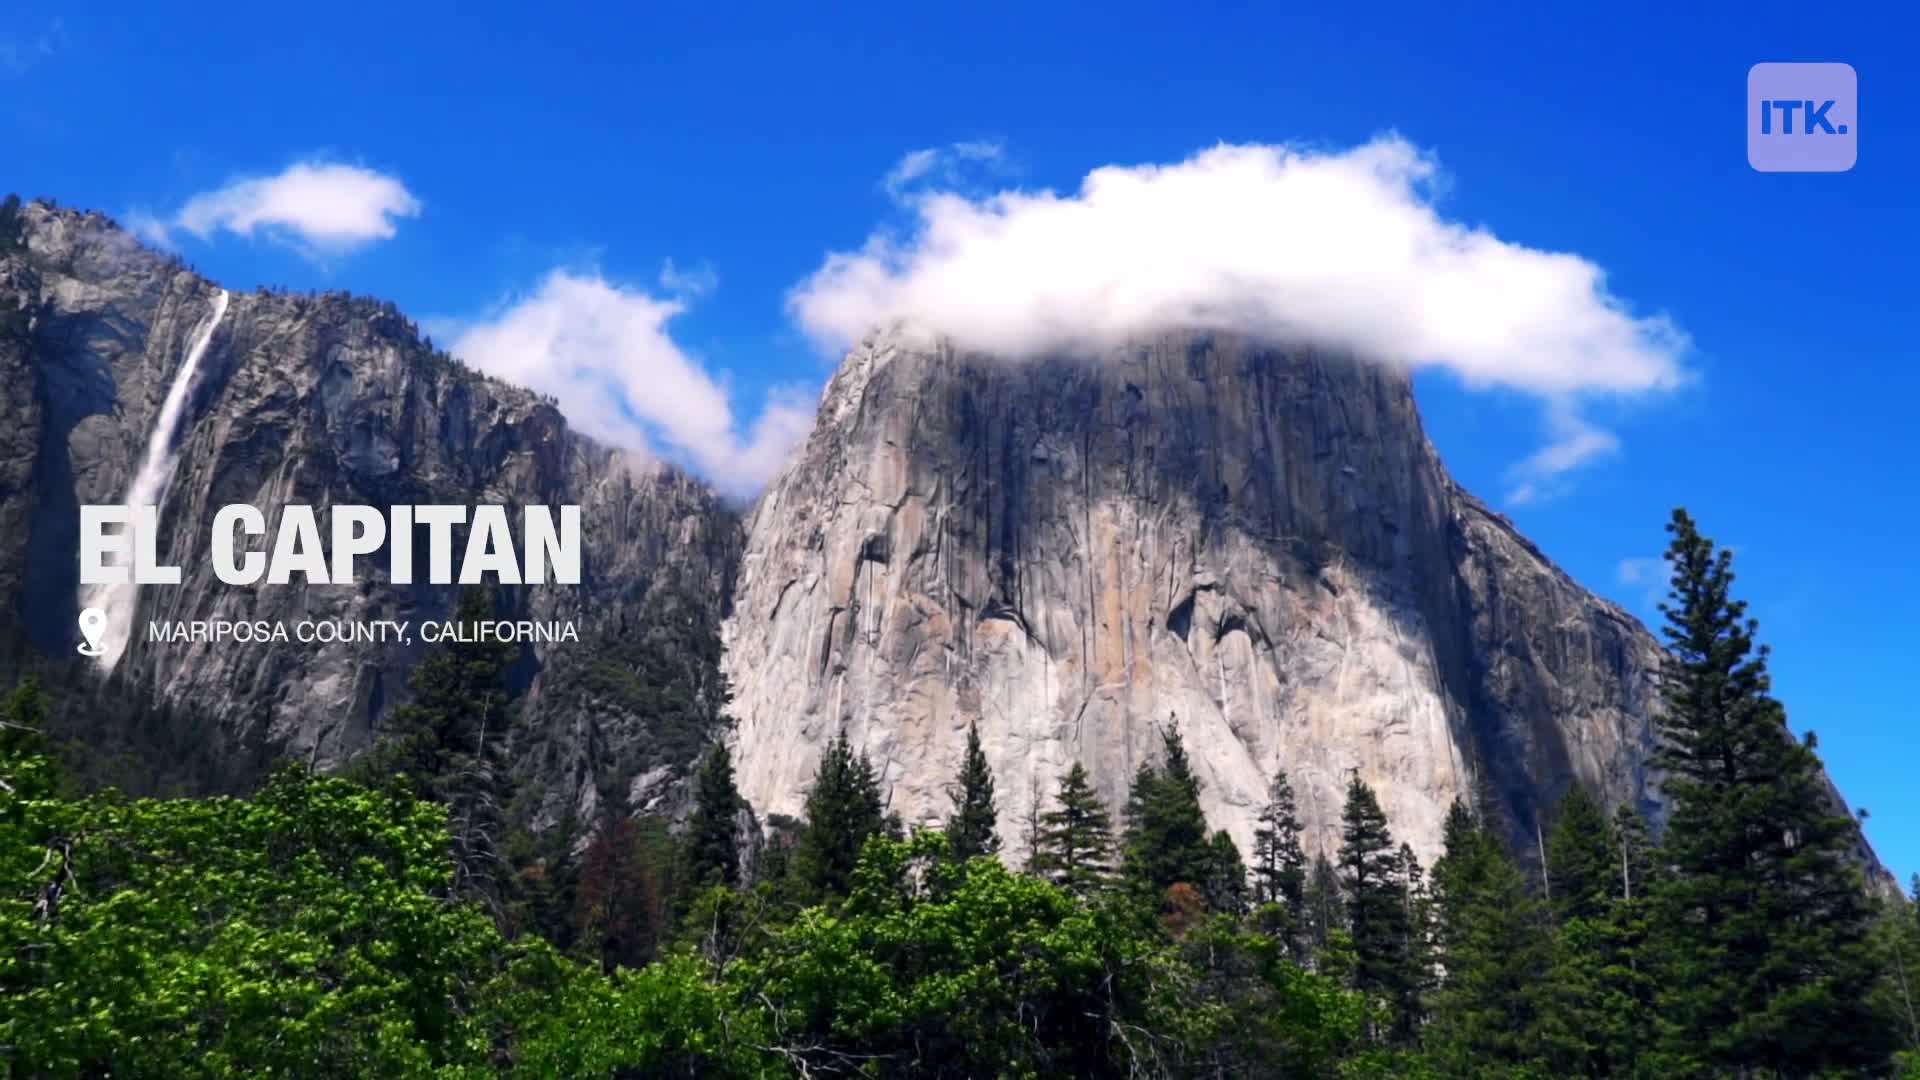 Selah Schneiter is the youngest person in history to climb Yosemite's El Capitan